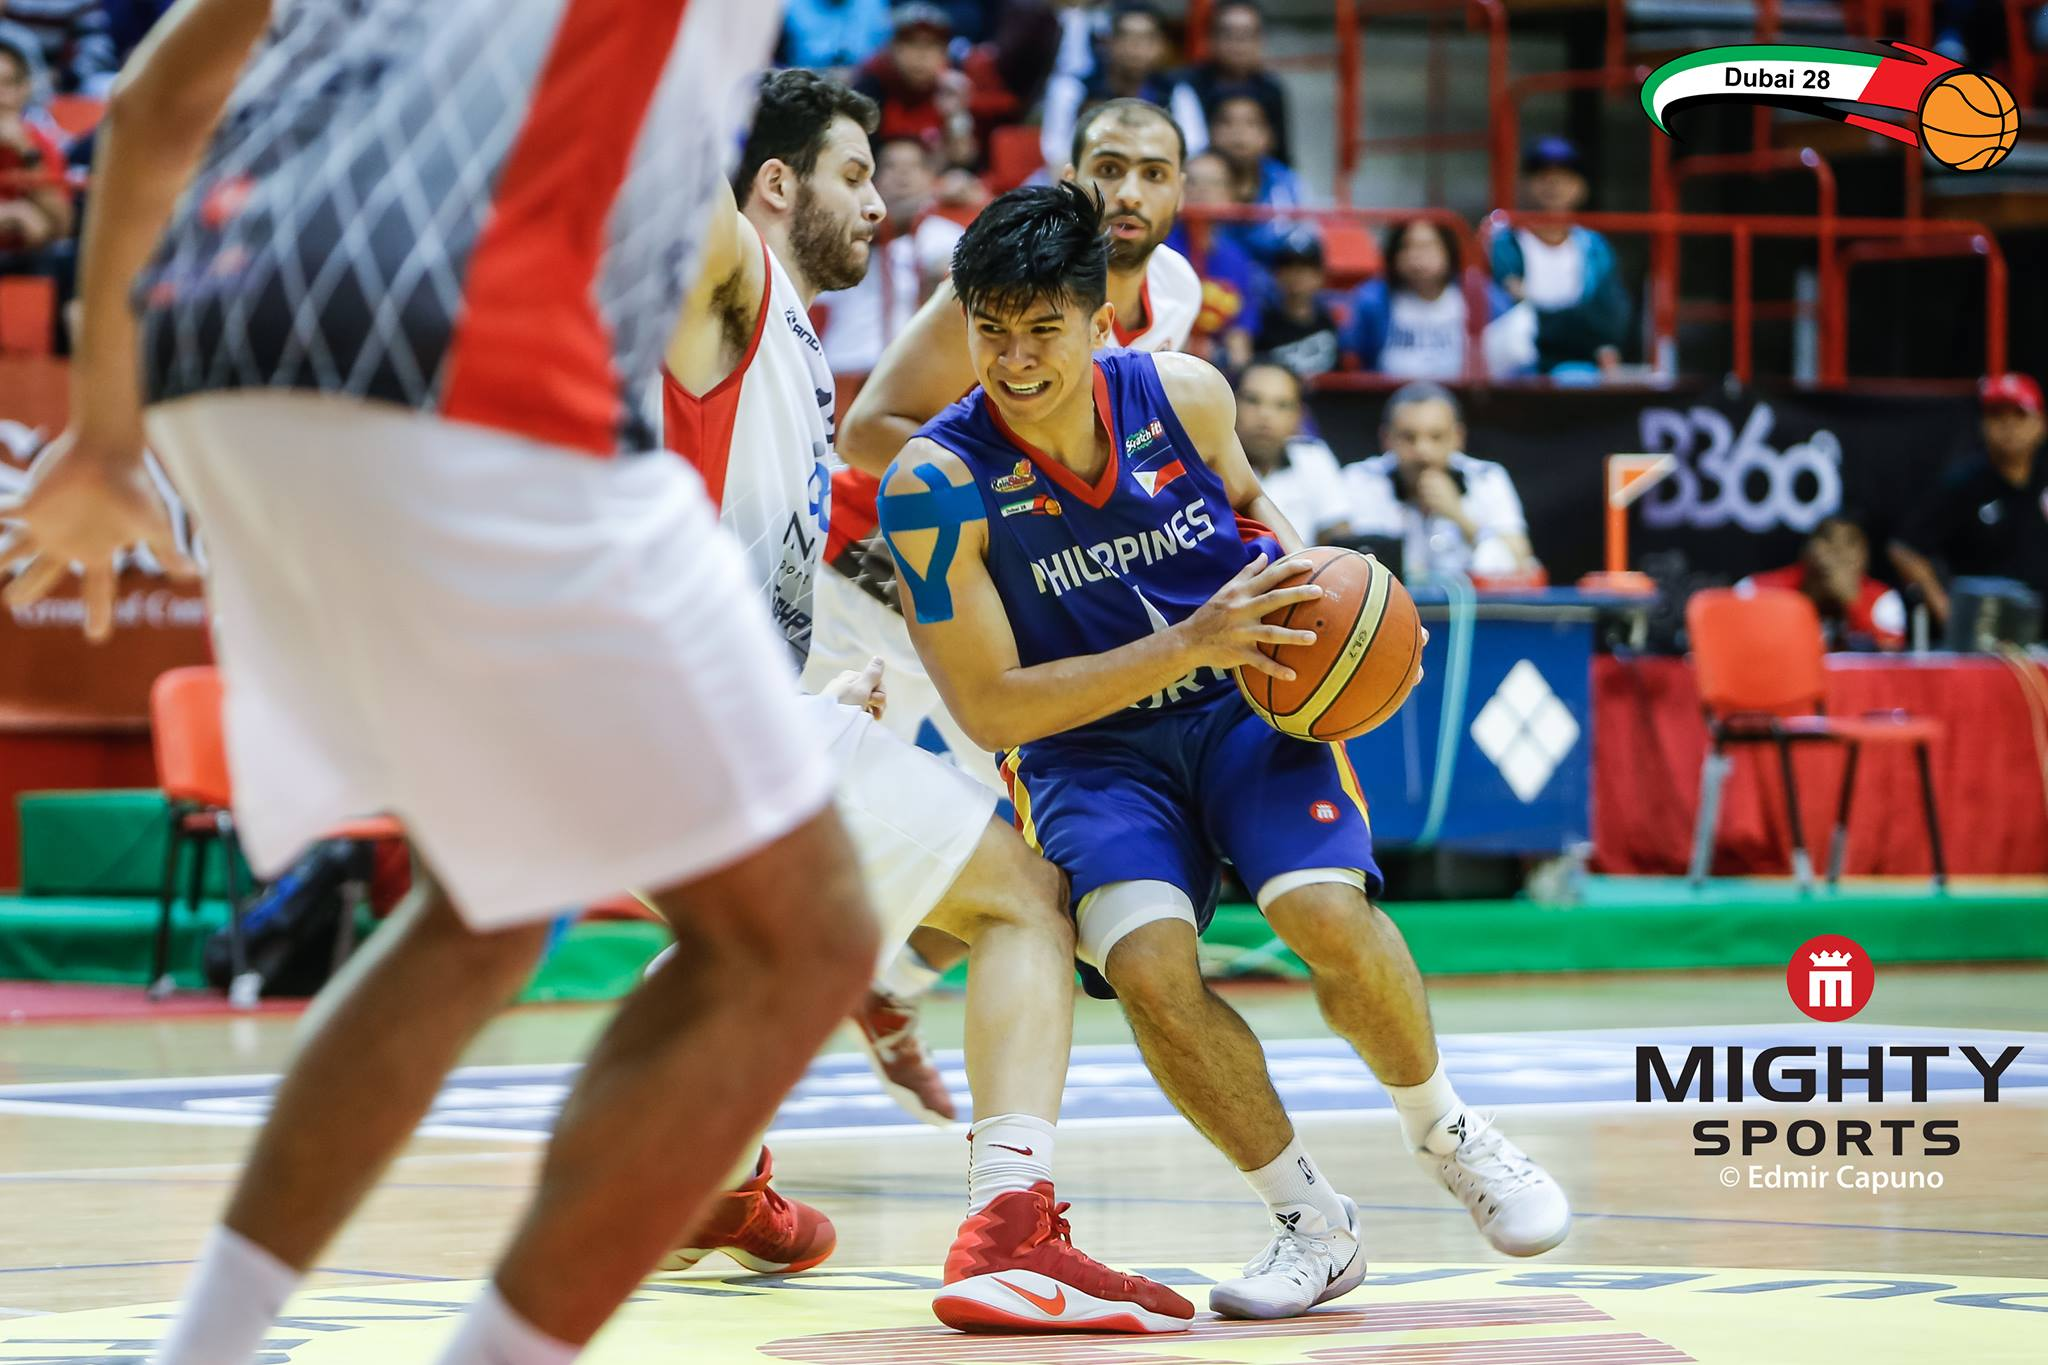 Tiebreaker Times Mighty Sports collapses late, absorbs third straight loss Basketball News Sagesse Club Mighty